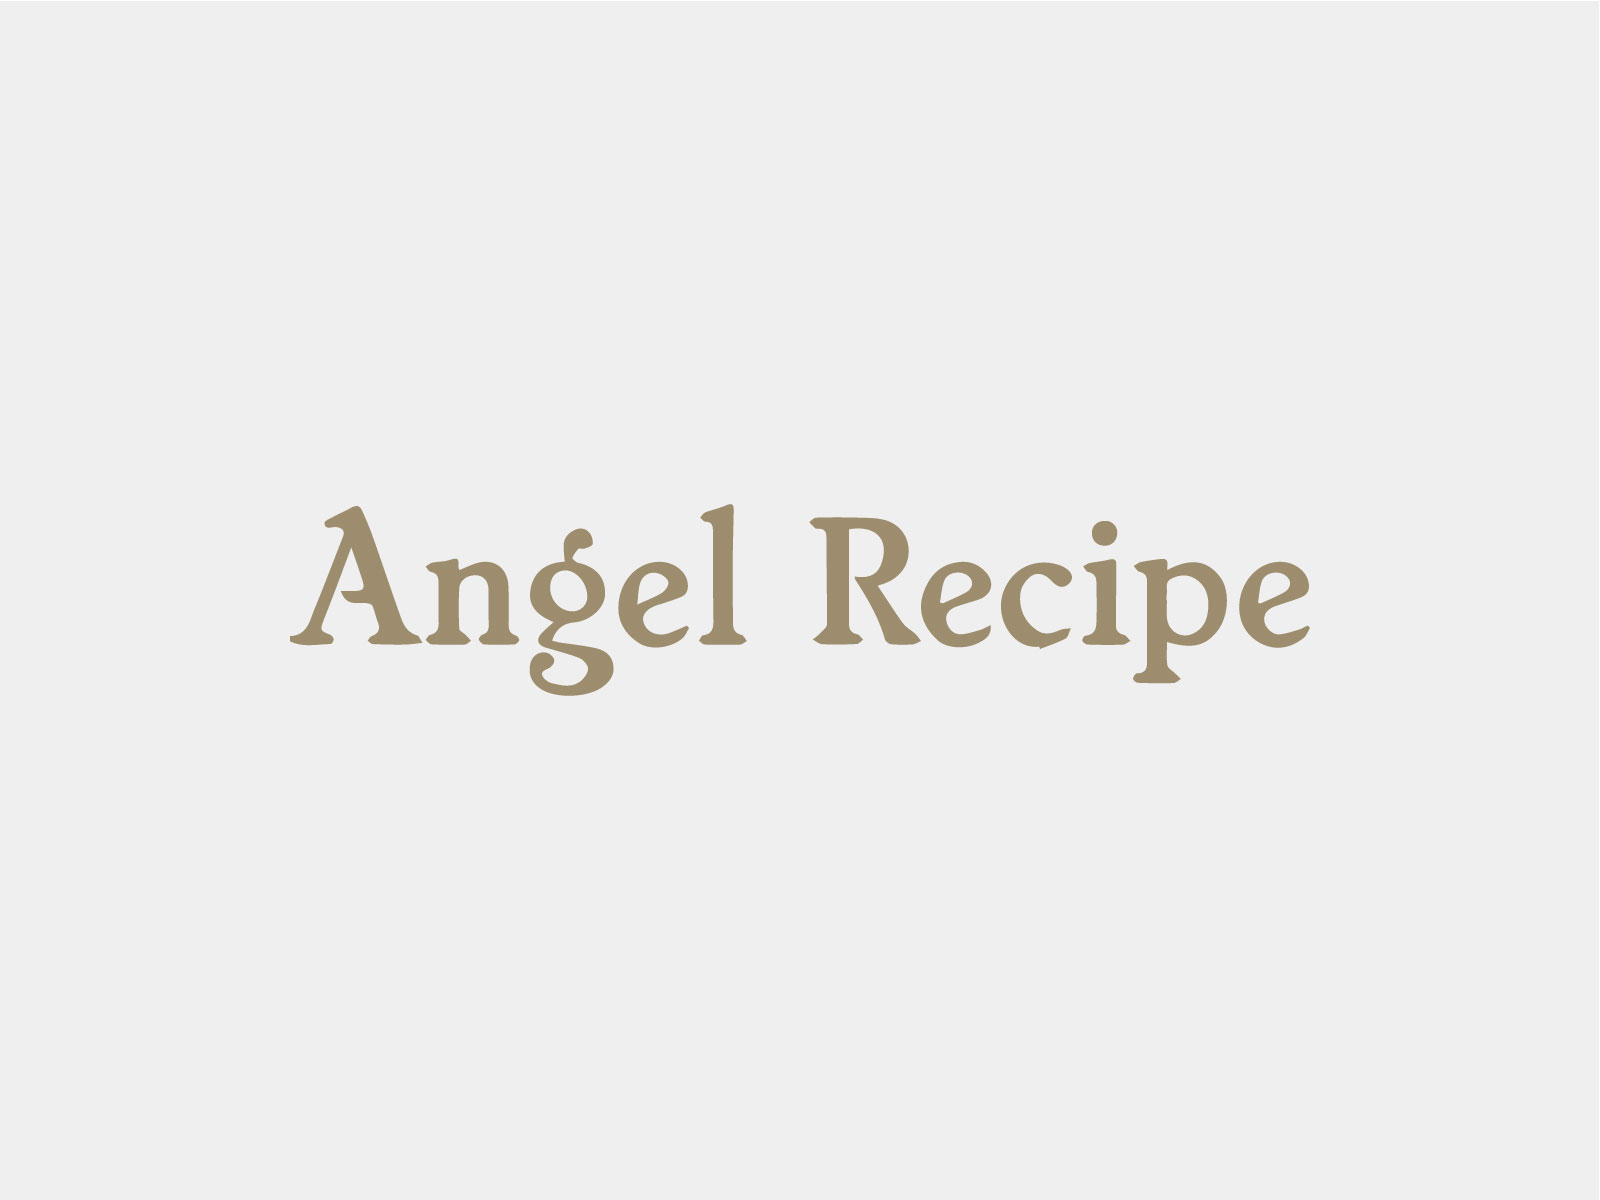 Angel Recipe